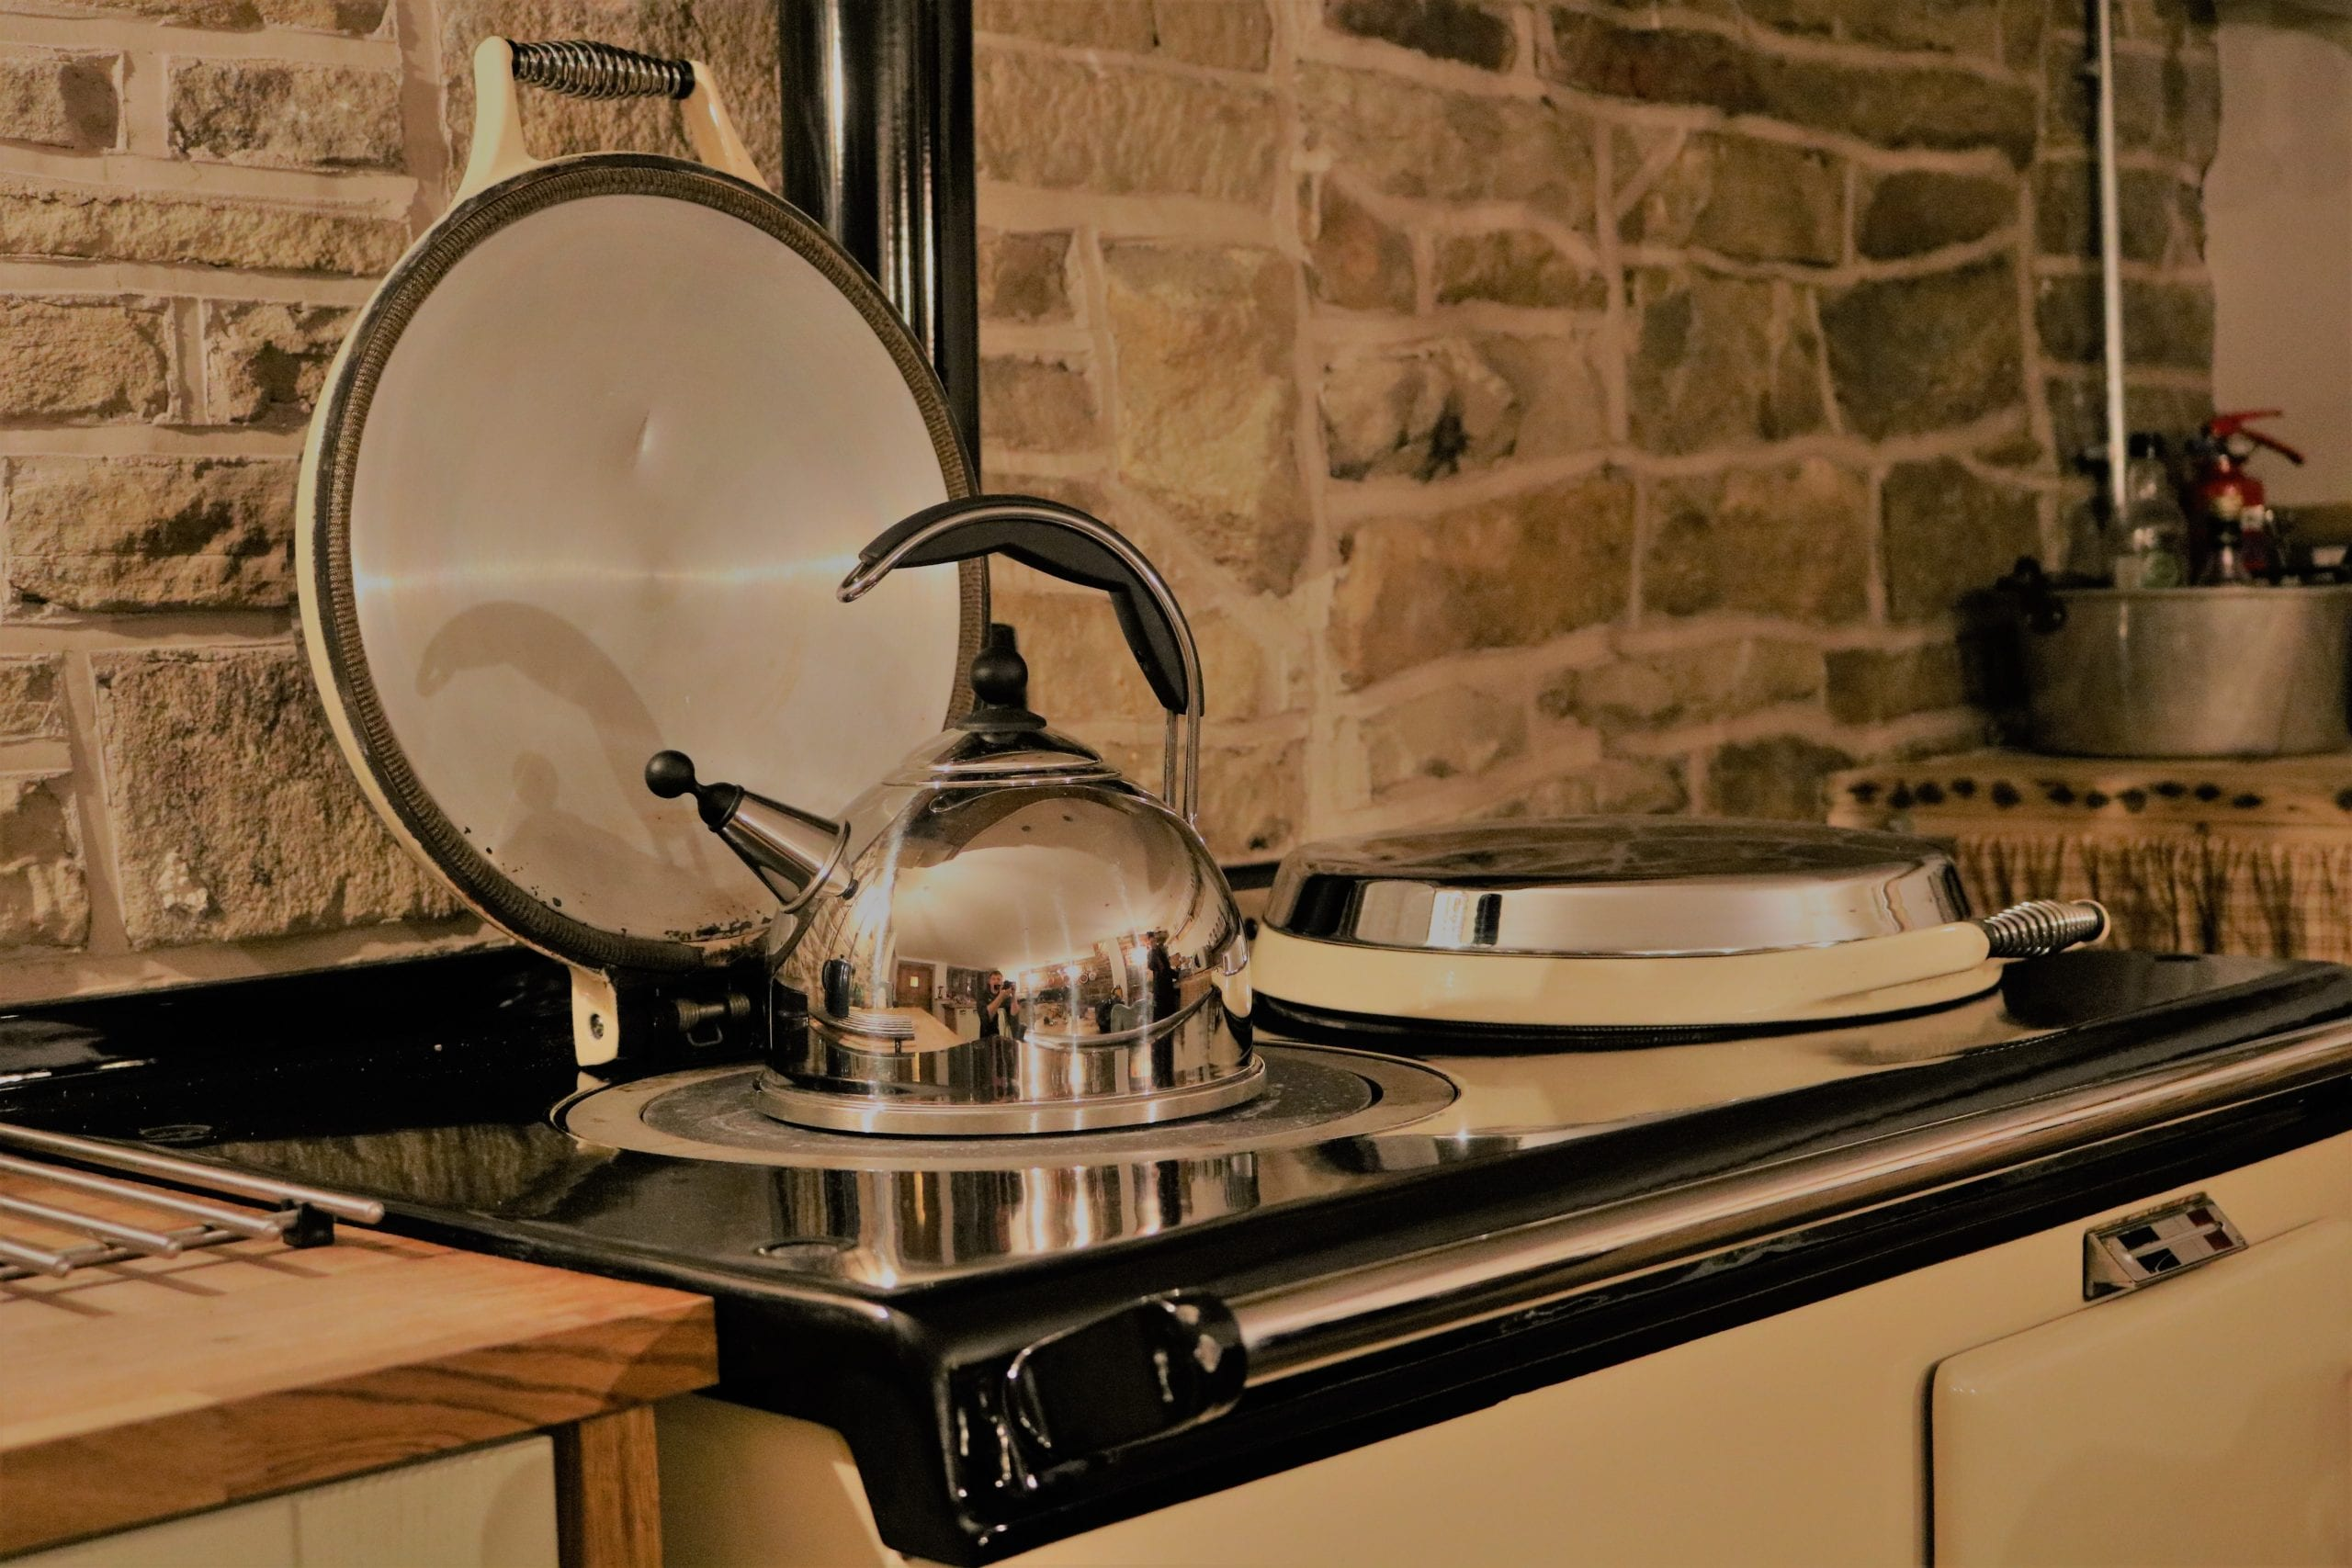 Kettle on arger in kitchen at Love Cottage from Heritage Cottages a beautiful Holiday cottage in Holmfirth, Last of the summer wine county